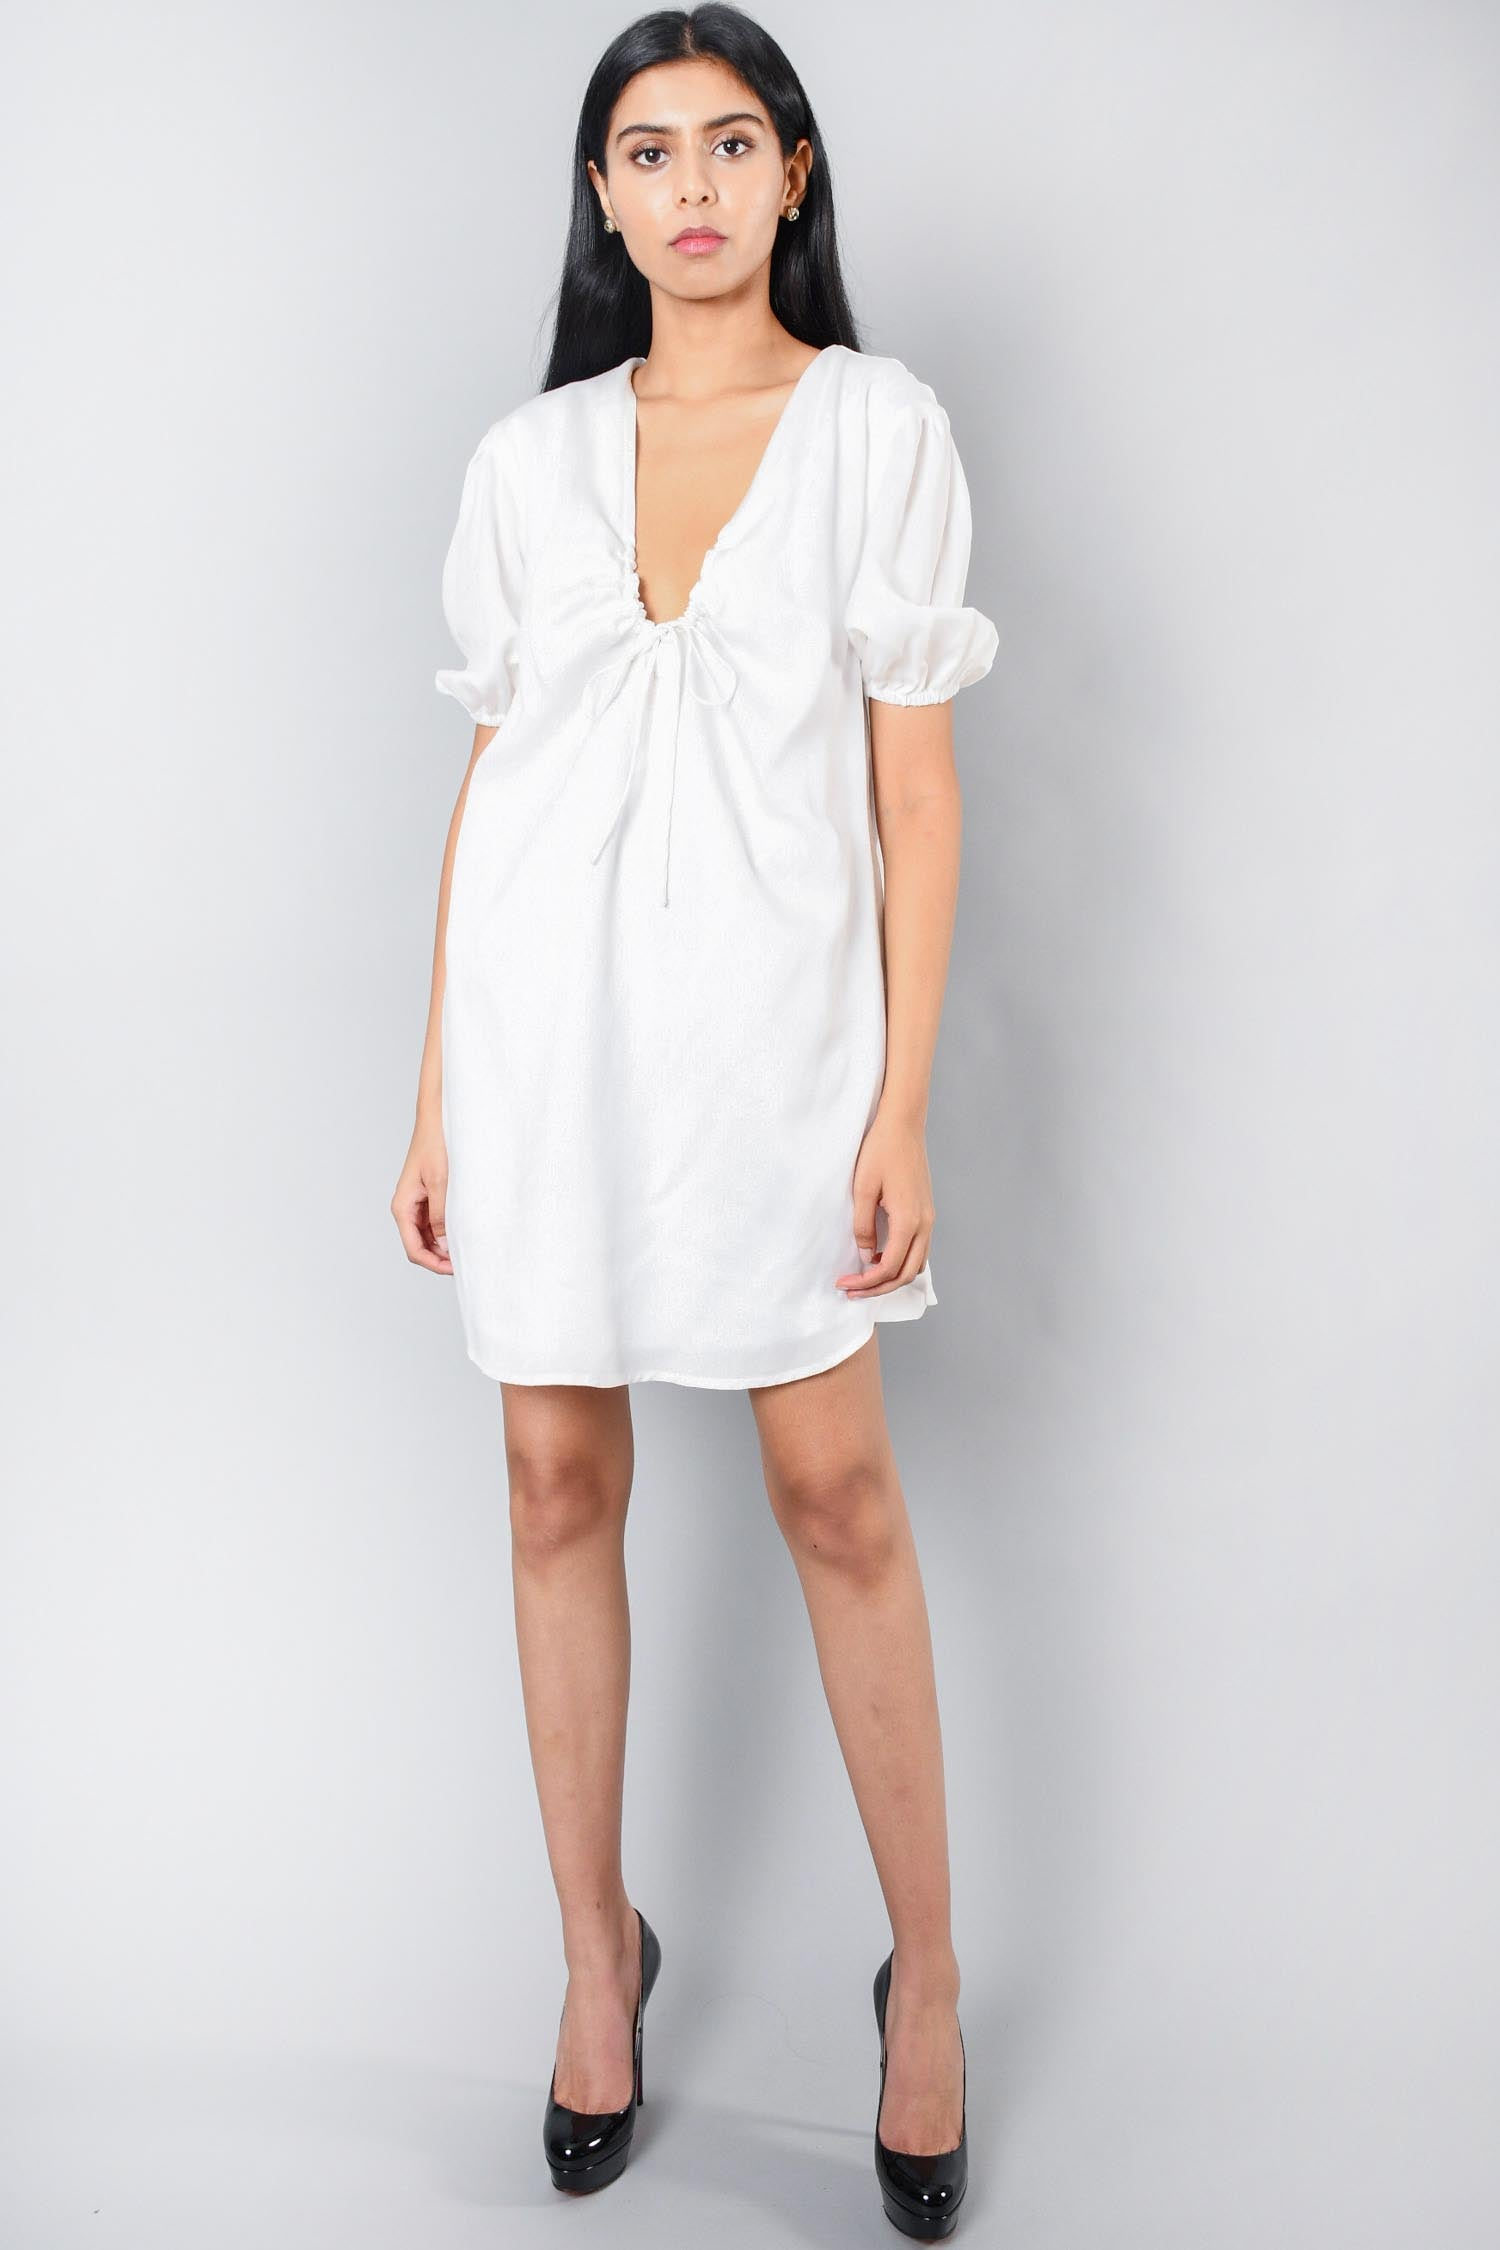 L'Academie White Amaya Dress Size S